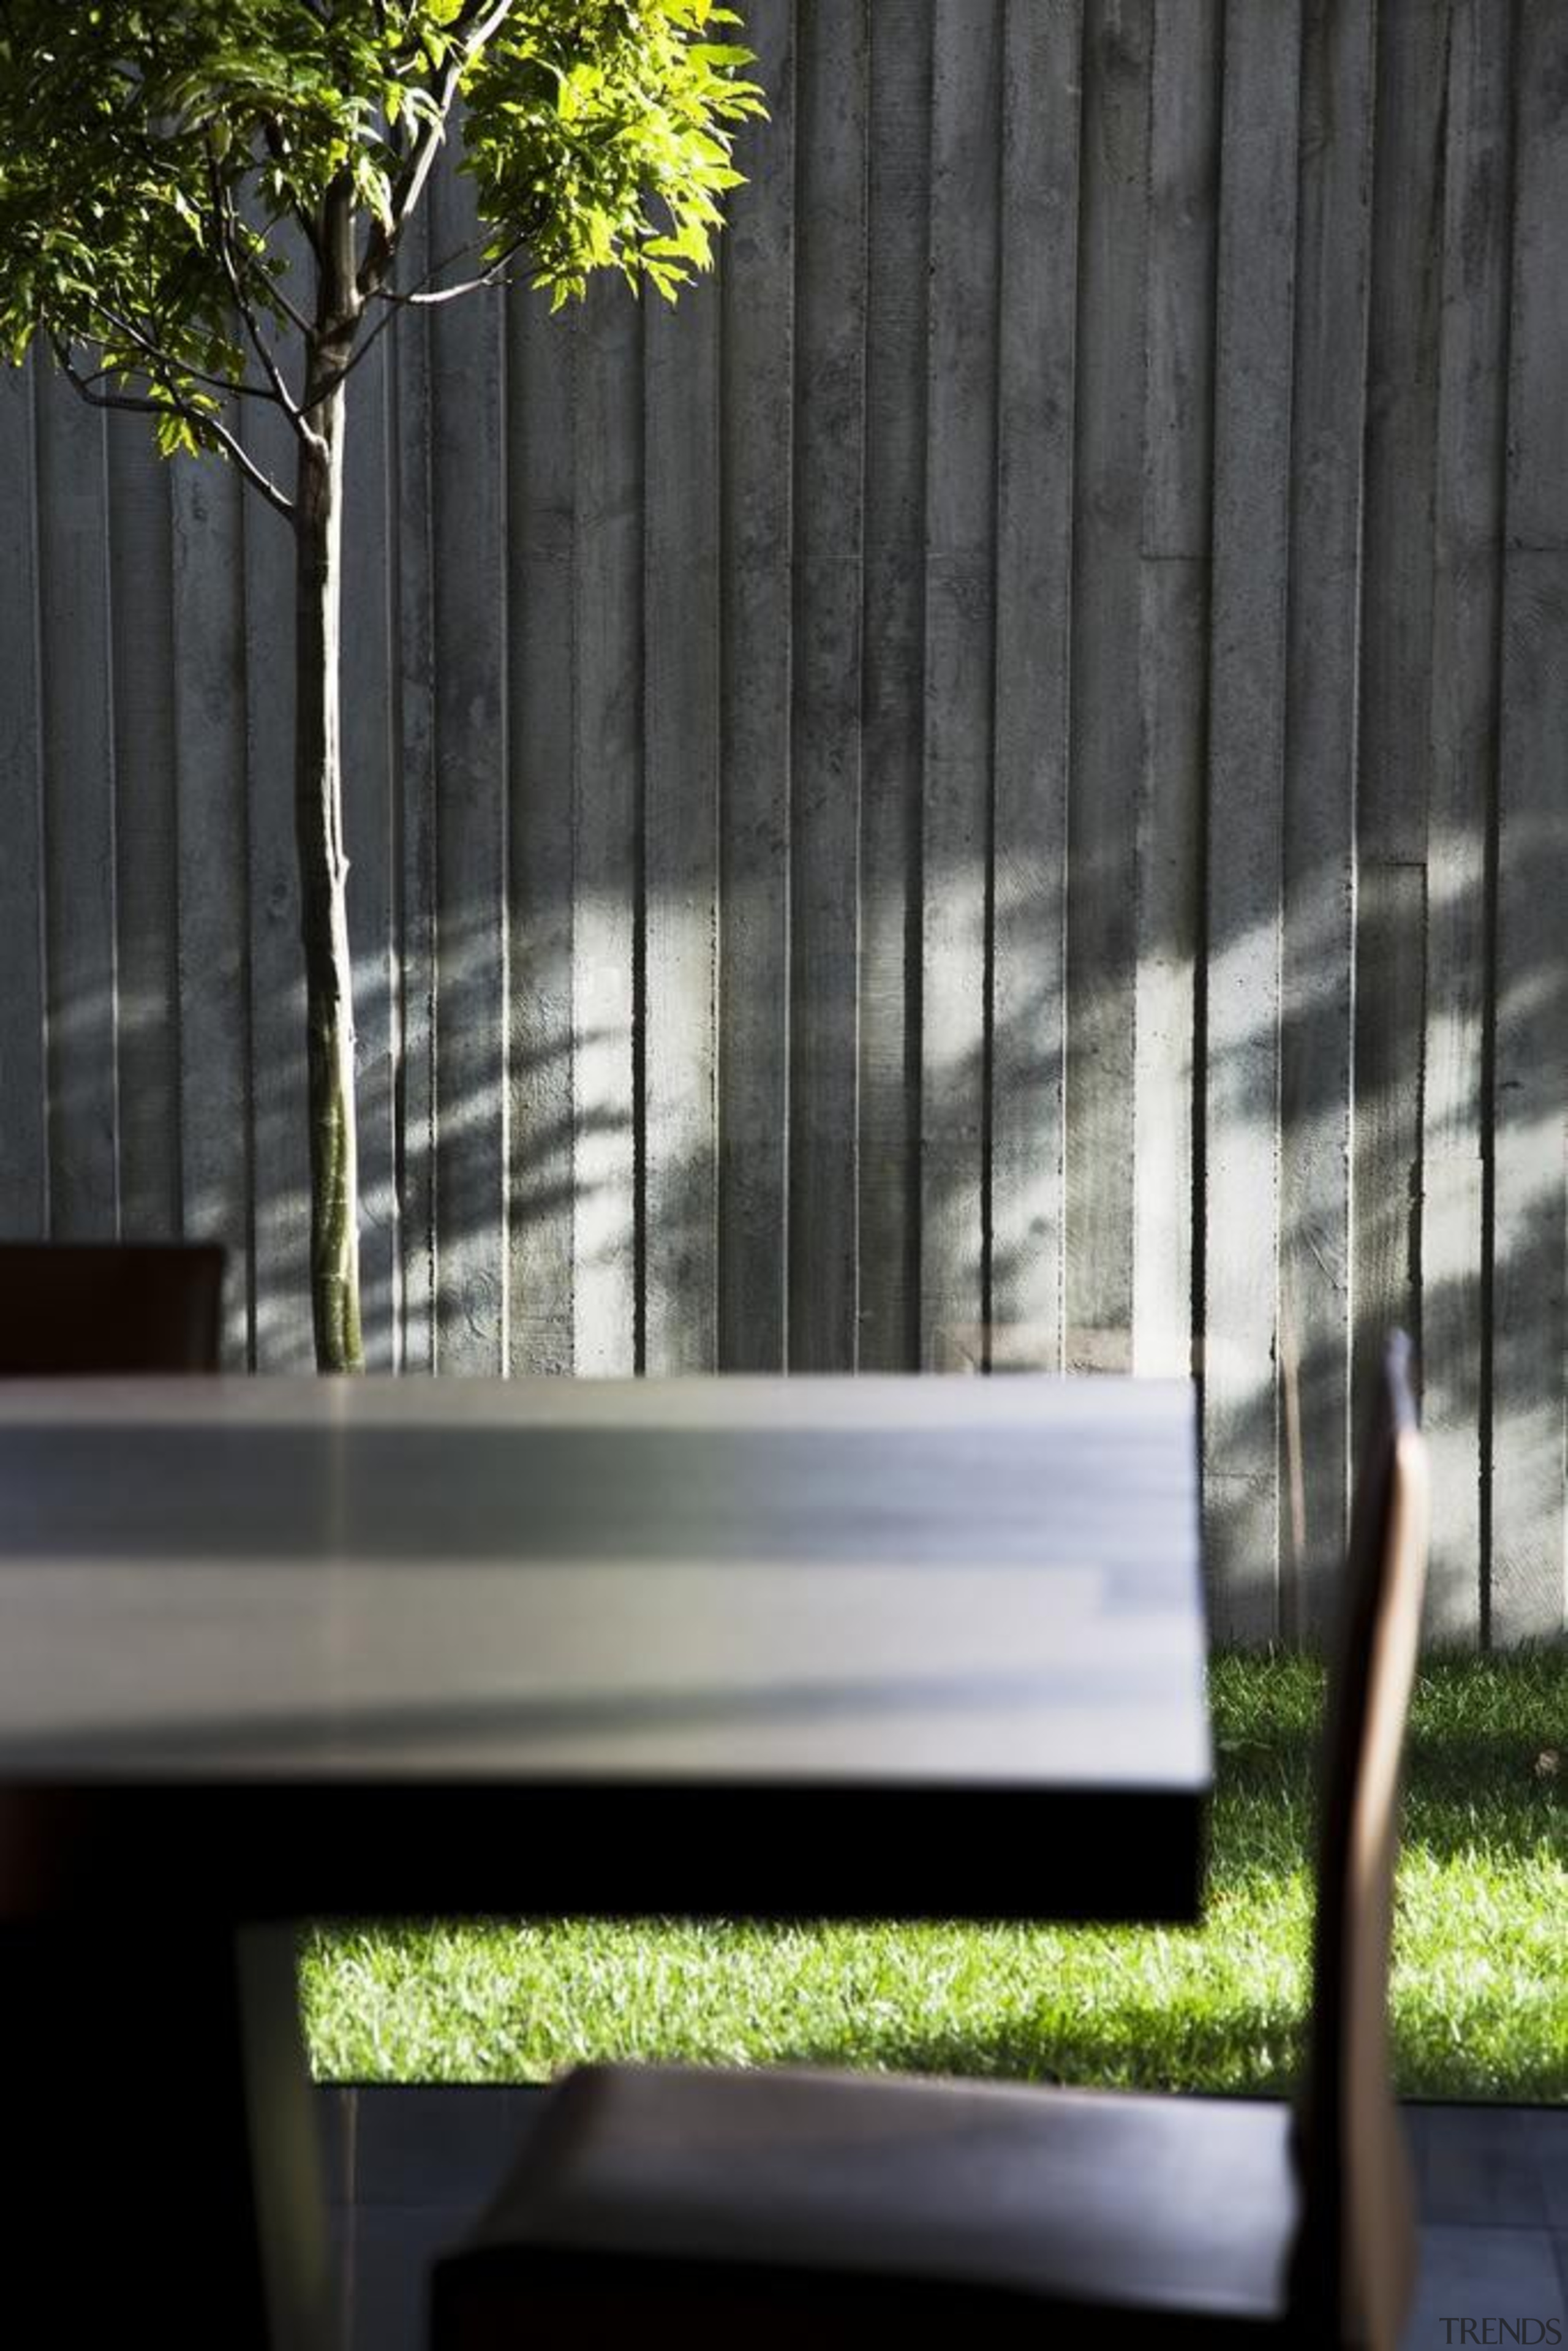 Remuera House - Remuera House - architecture | architecture, bench, daylighting, furniture, glass, handrail, home, house, plant, reflection, sunlight, tree, wall, window, wood, black